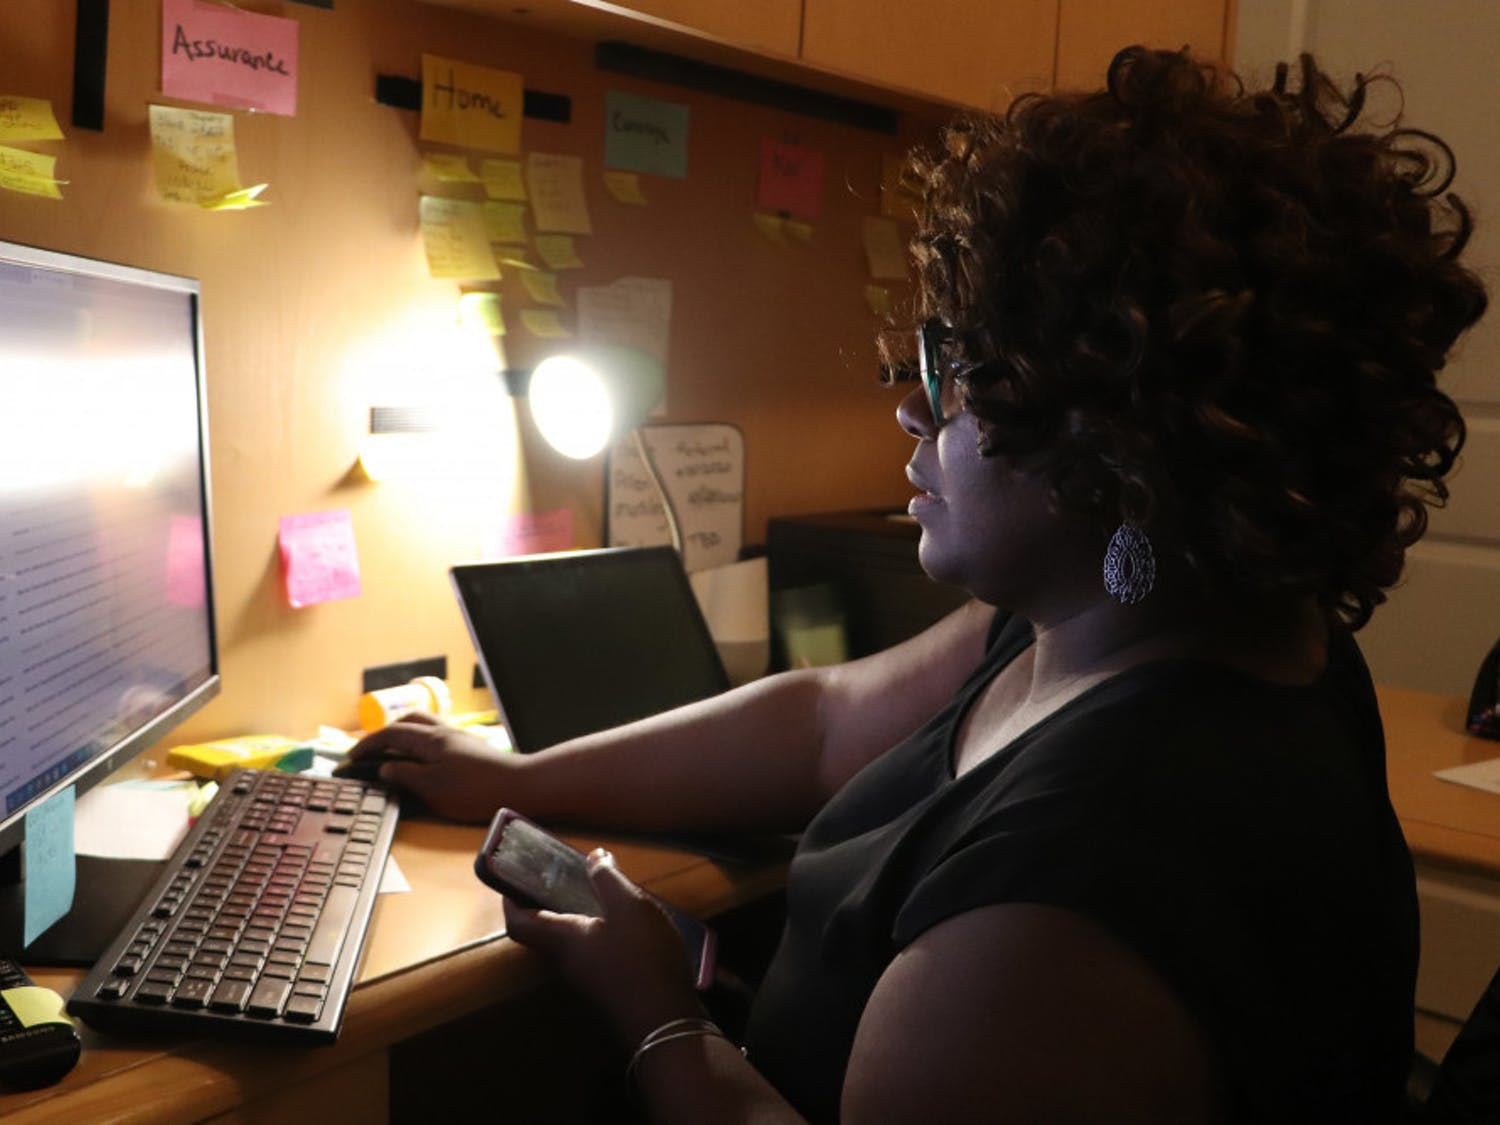 Chanae Jackson checks her email while talking on the phone in Ocala, Fla., on Thursday, Sept. 24, 2020. She said she spends about seven hours a day on the phone talking with clients, paying bills, following-up for her community work and client services, marketing her businesses and making personal phone calls.